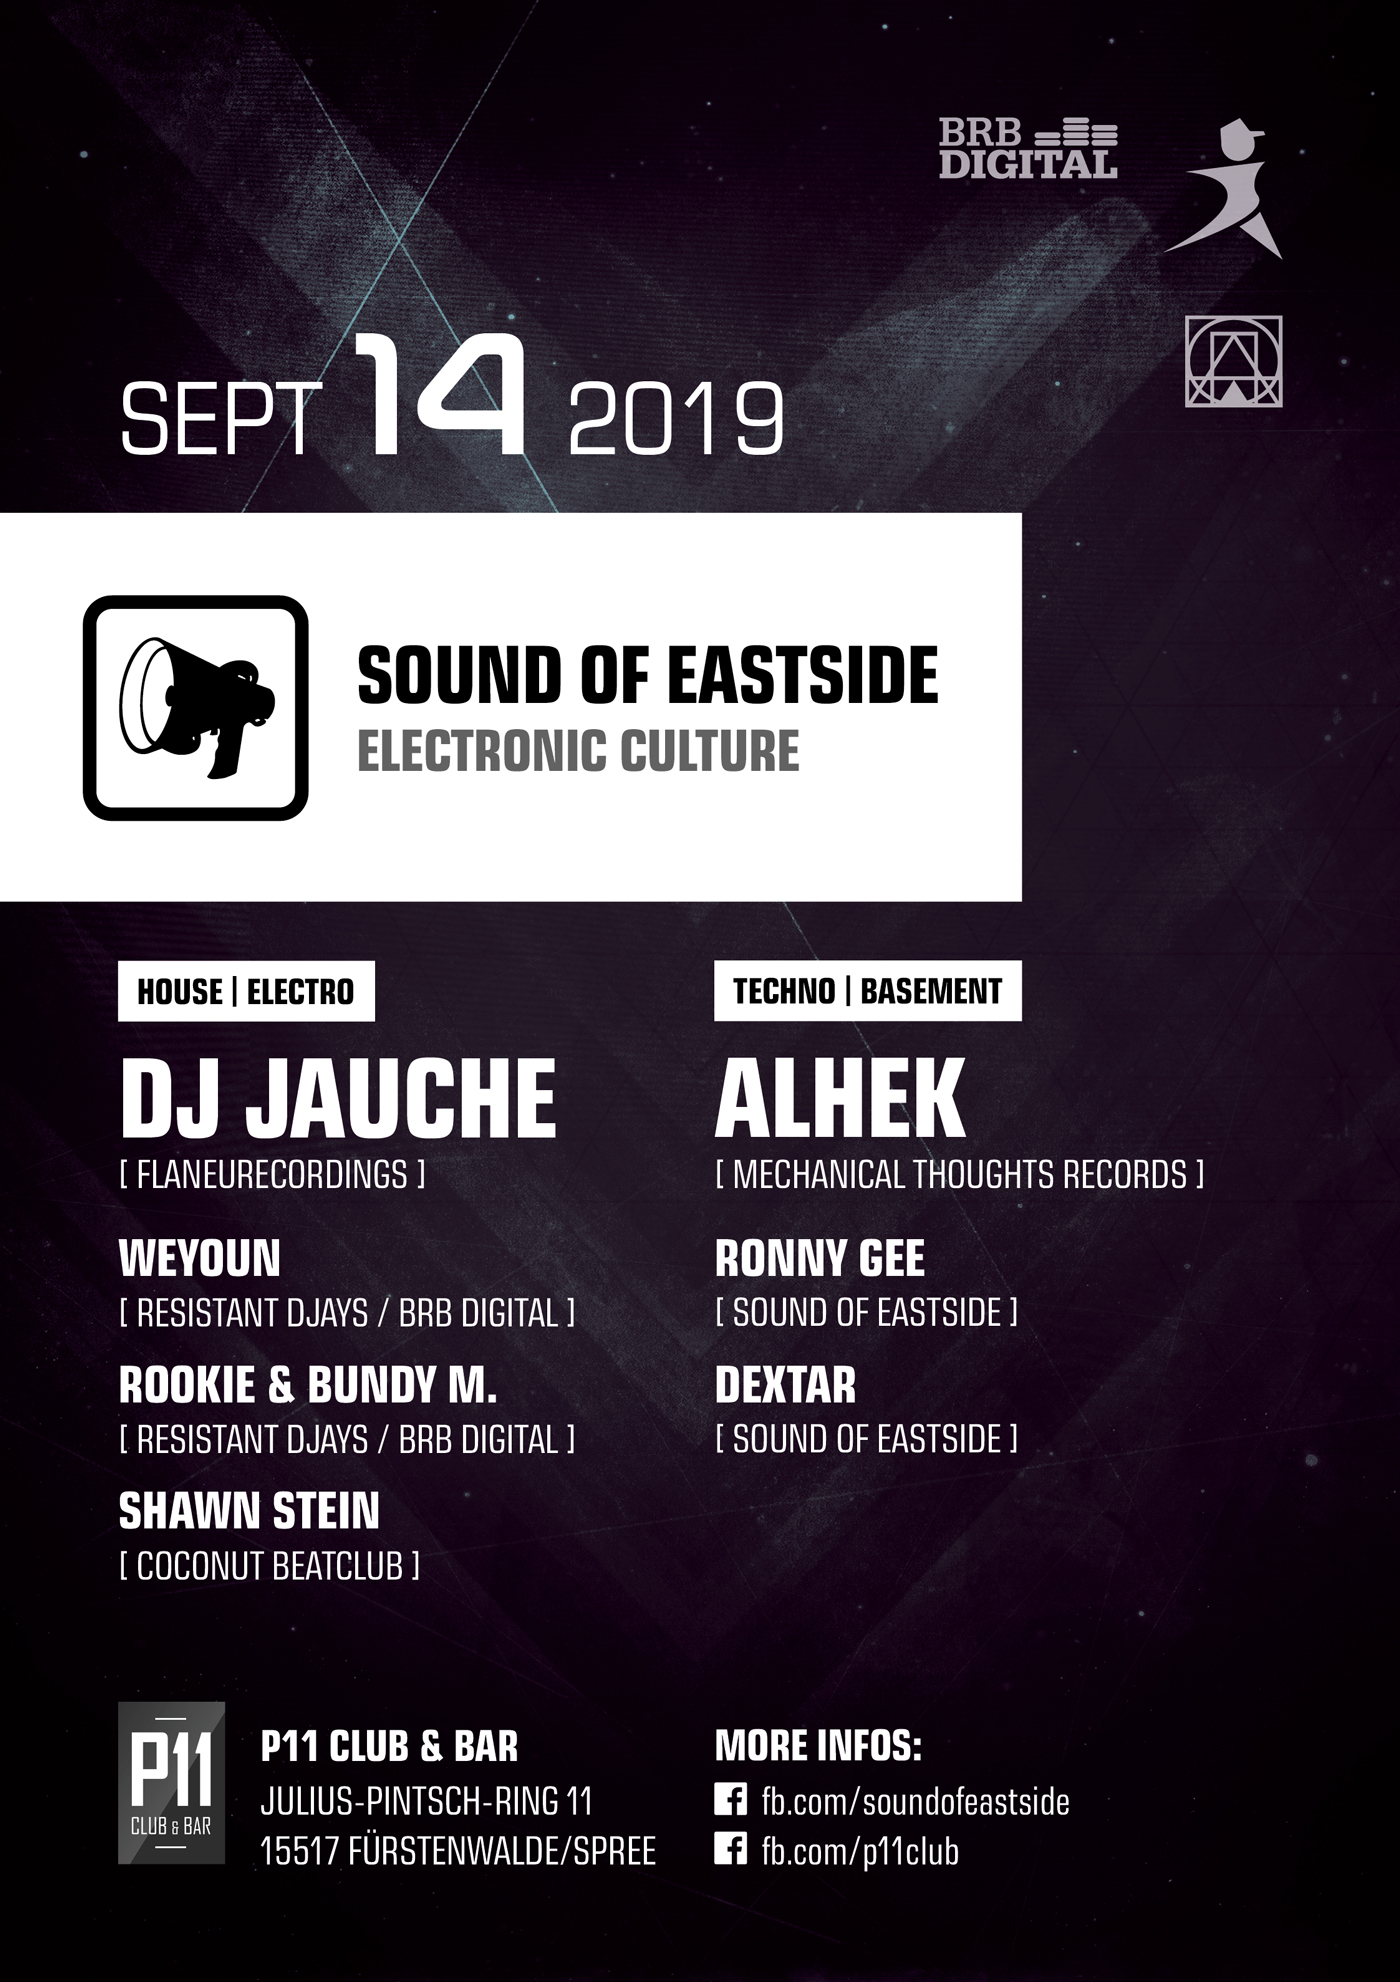 Event-Flyer: Sound of Eastside w/ Dj Jauche, ALHEK, BRB Digital